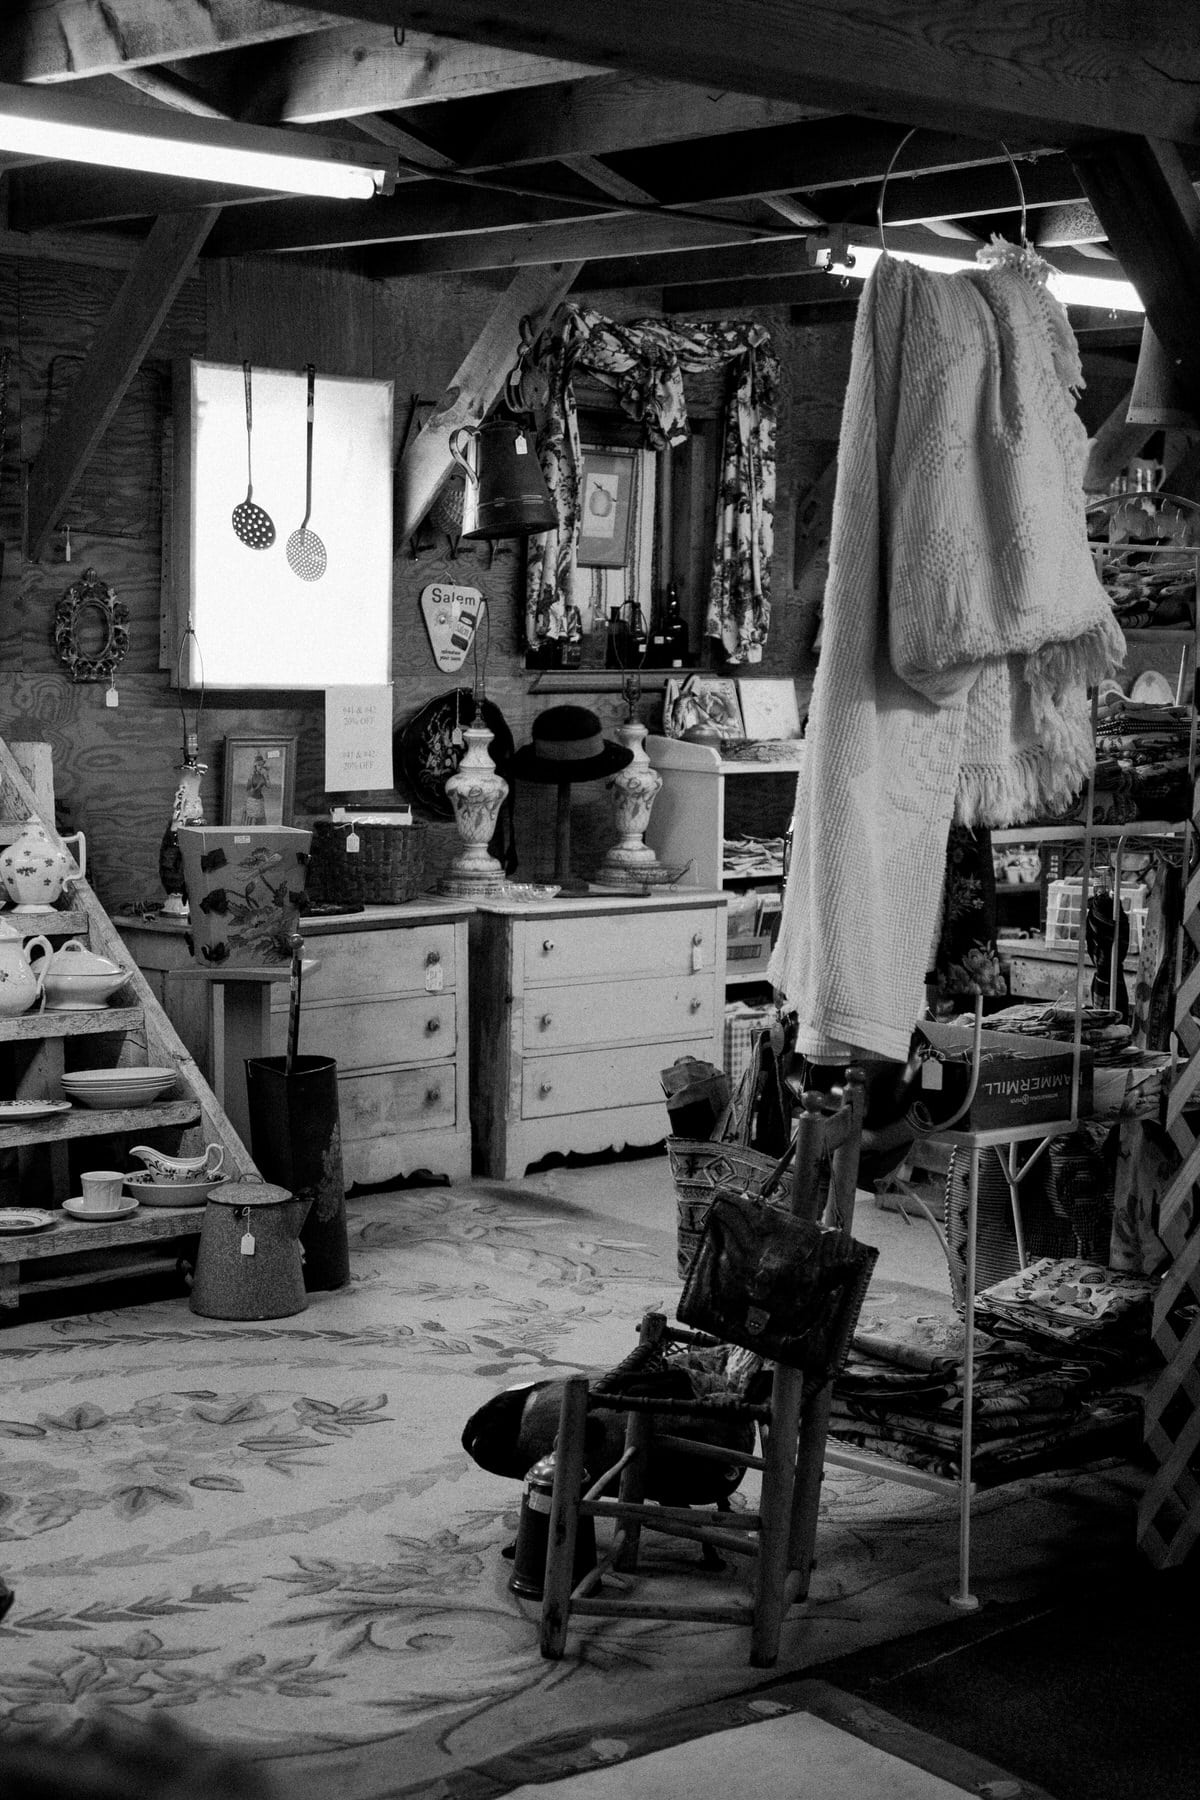 Maine-flea-market-black-and-white-fine-art-photography-by-Studio-L-photographer-Laura-Schneider-_5725